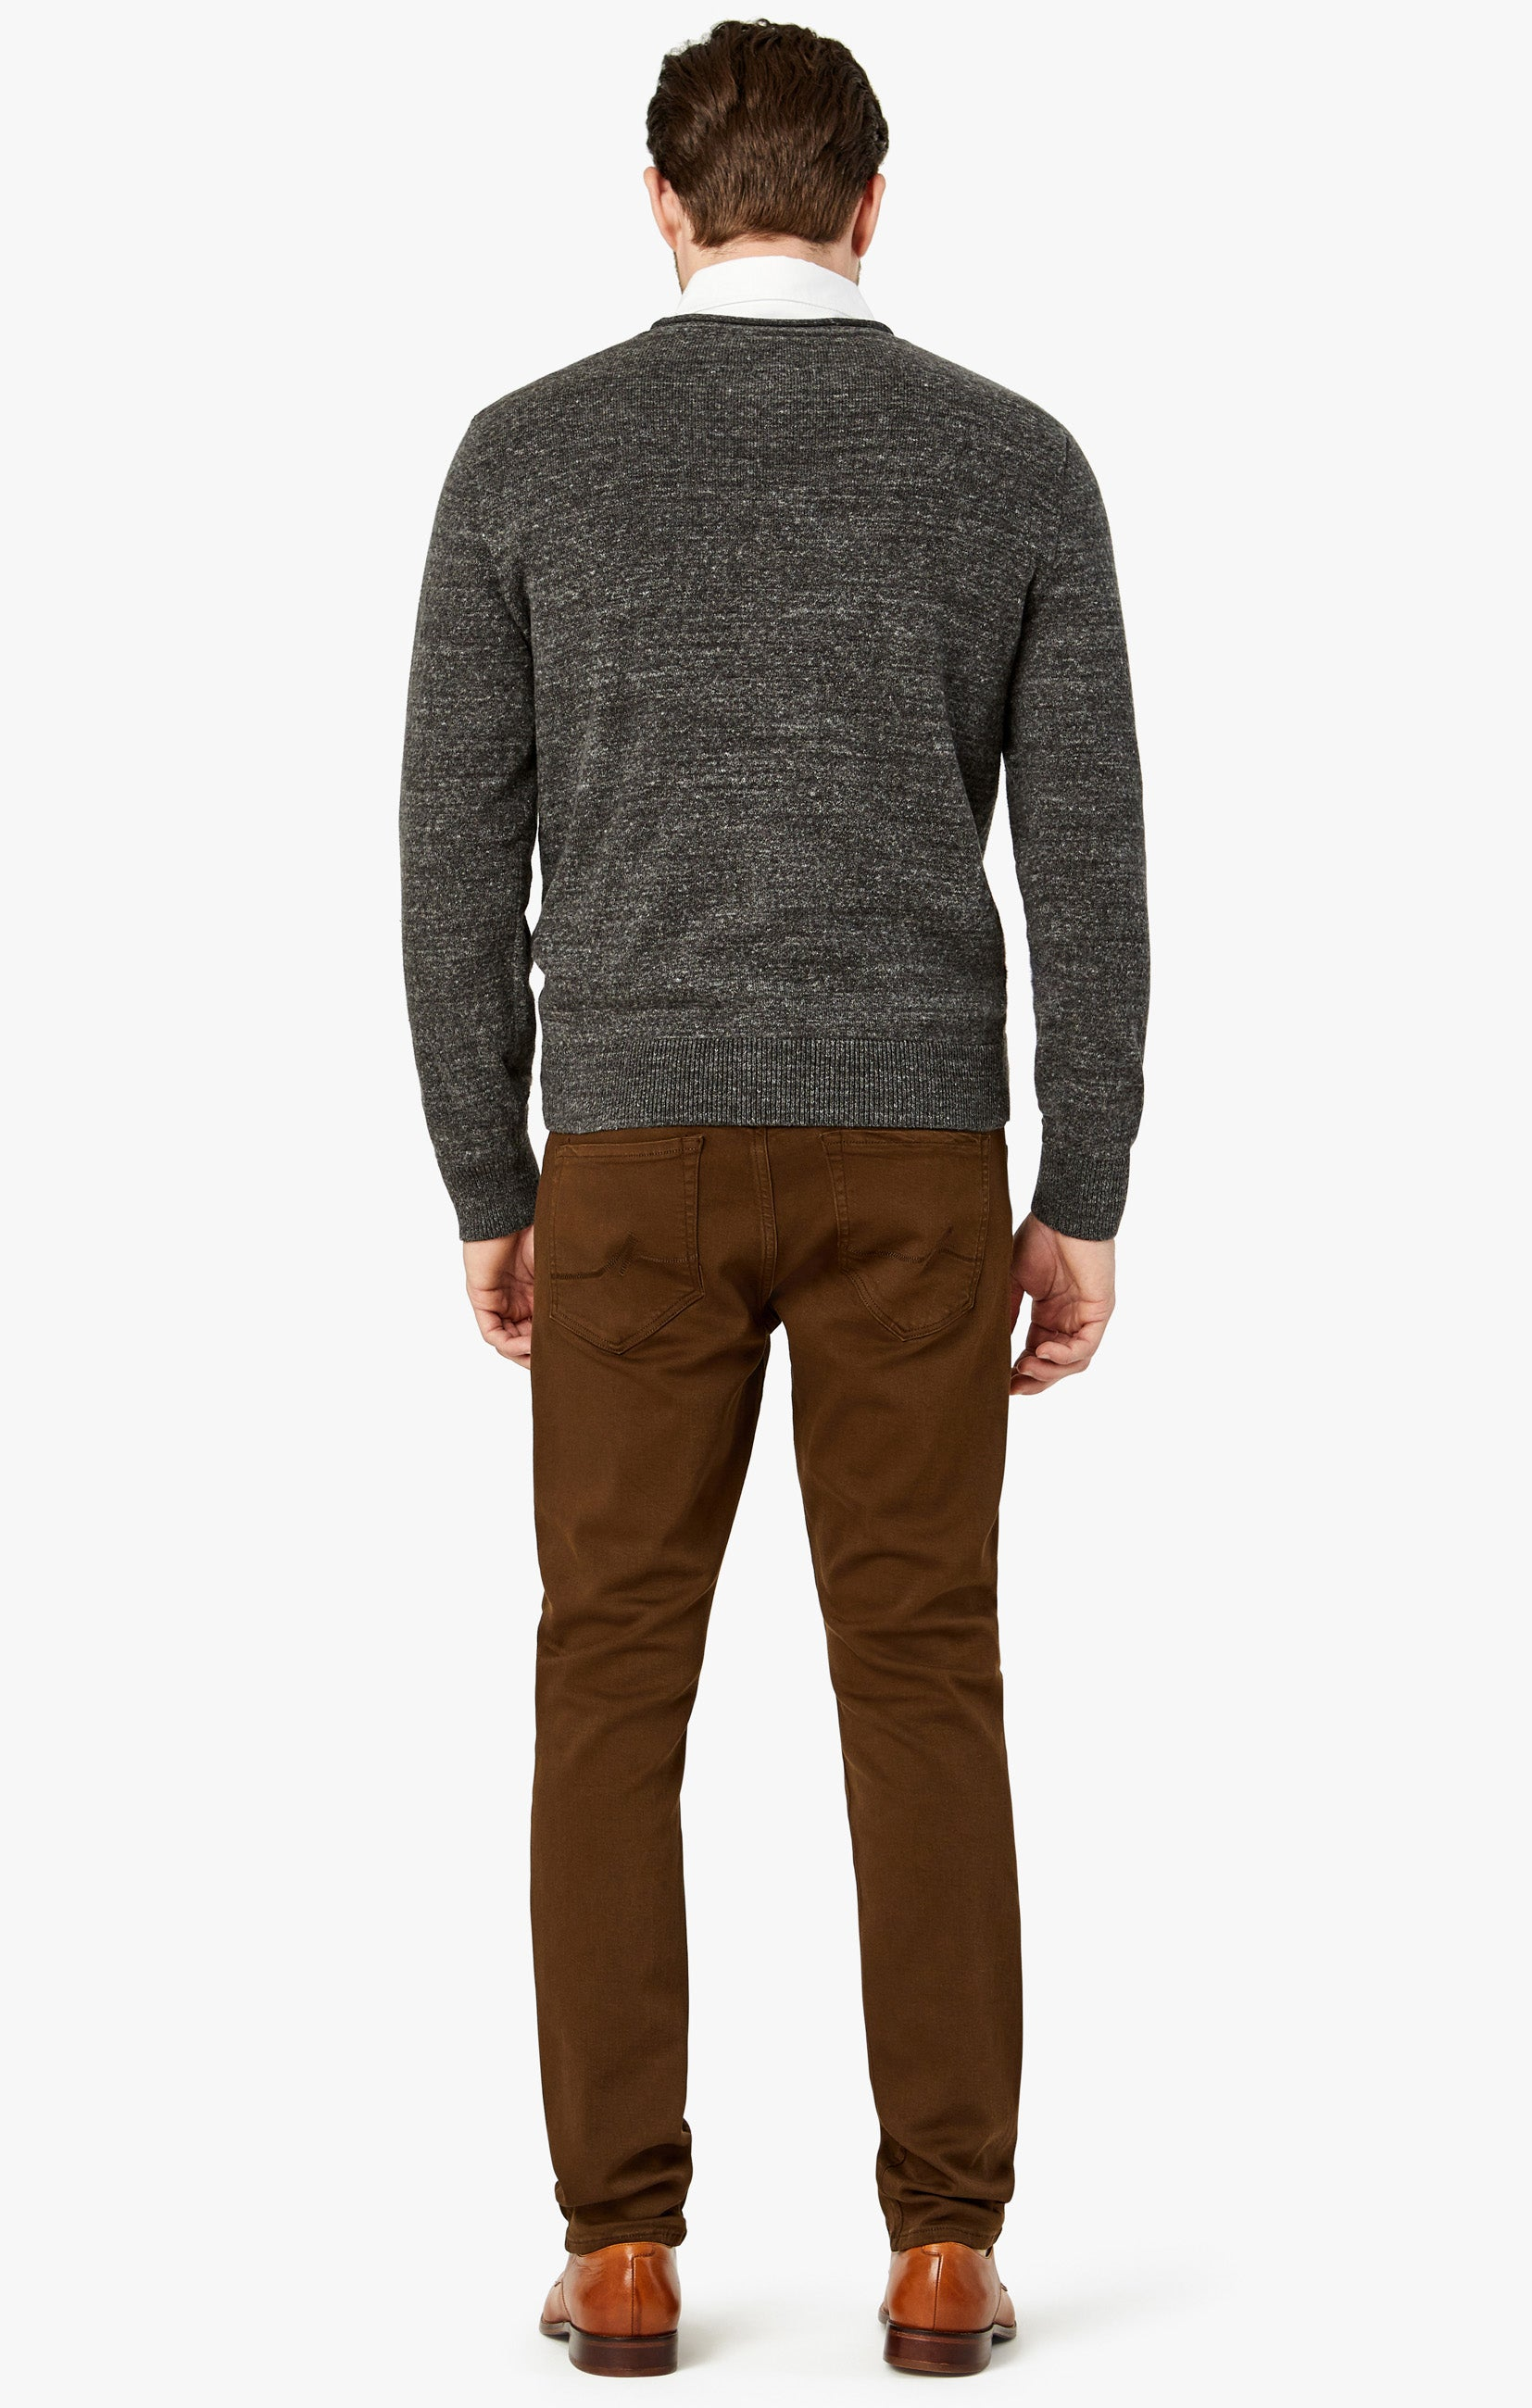 Charisma Relaxed Straight Pants in Brown Comfort Image 5